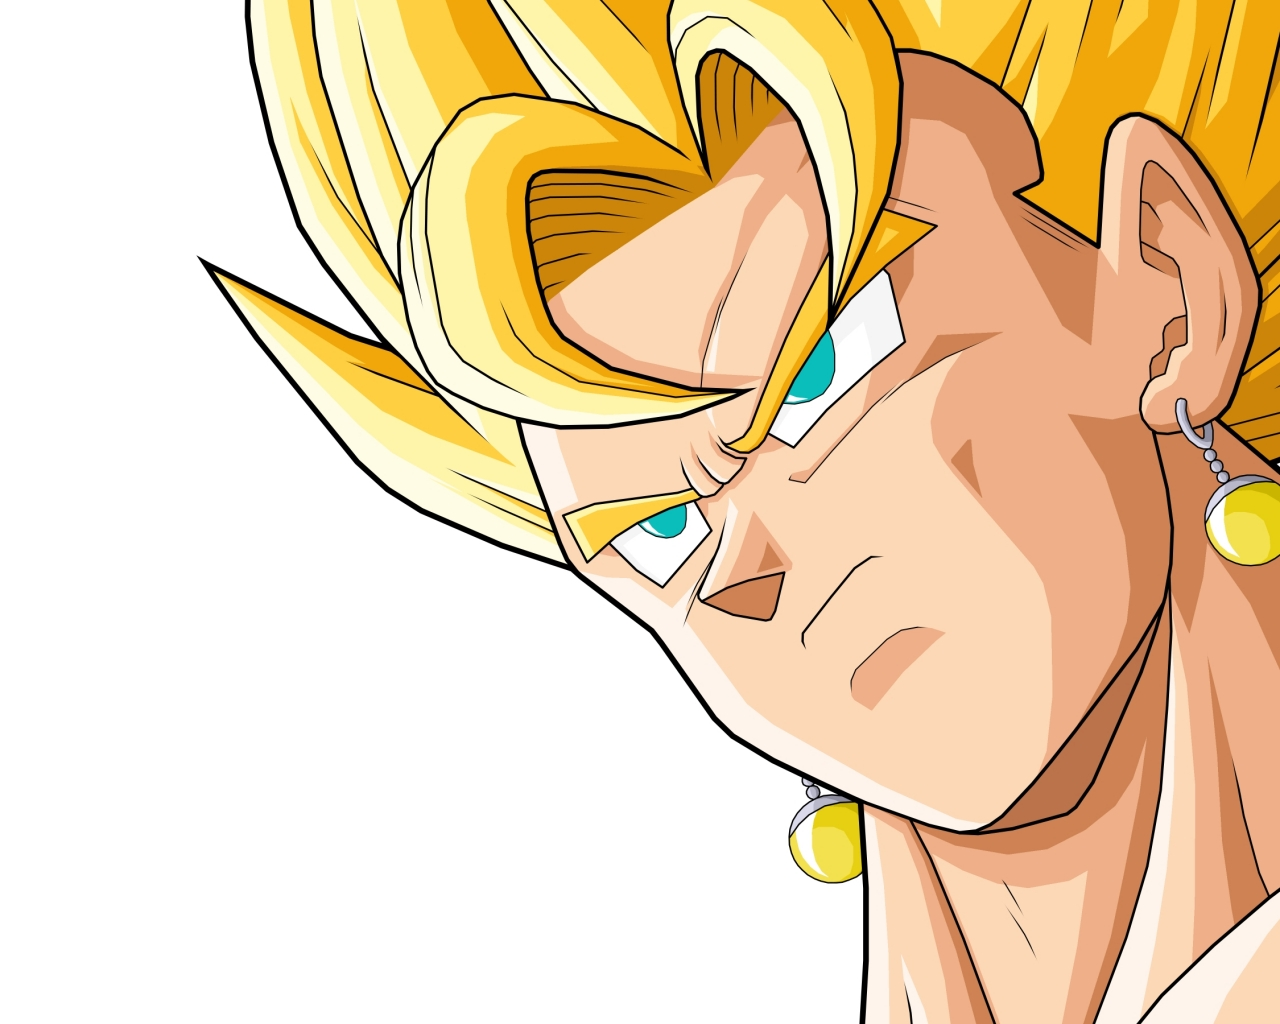 Vegeto de Dragon Ball Z - 1280x1024